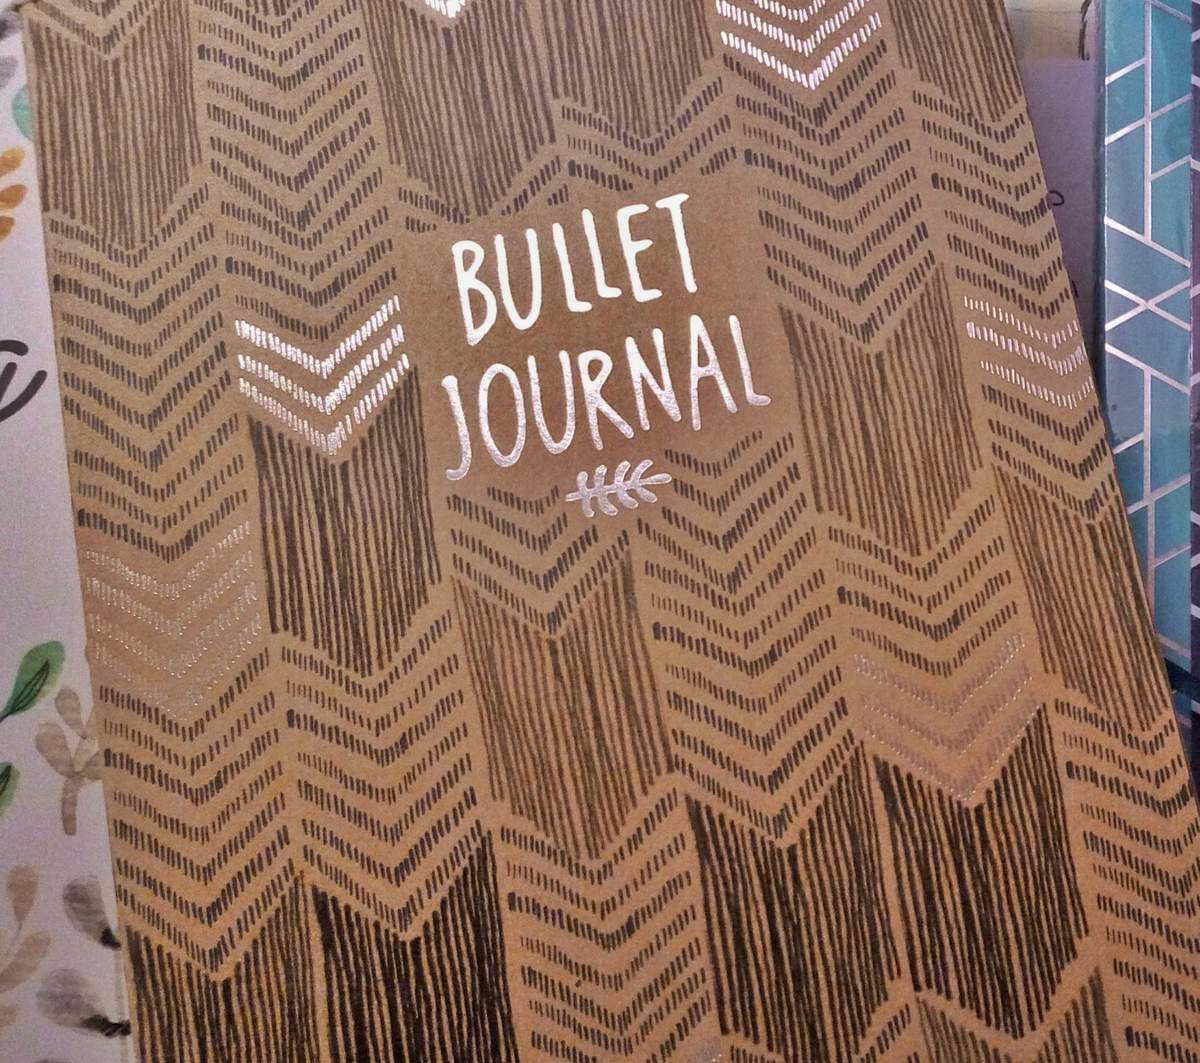 Le Bullet journal : comment faire simple ?